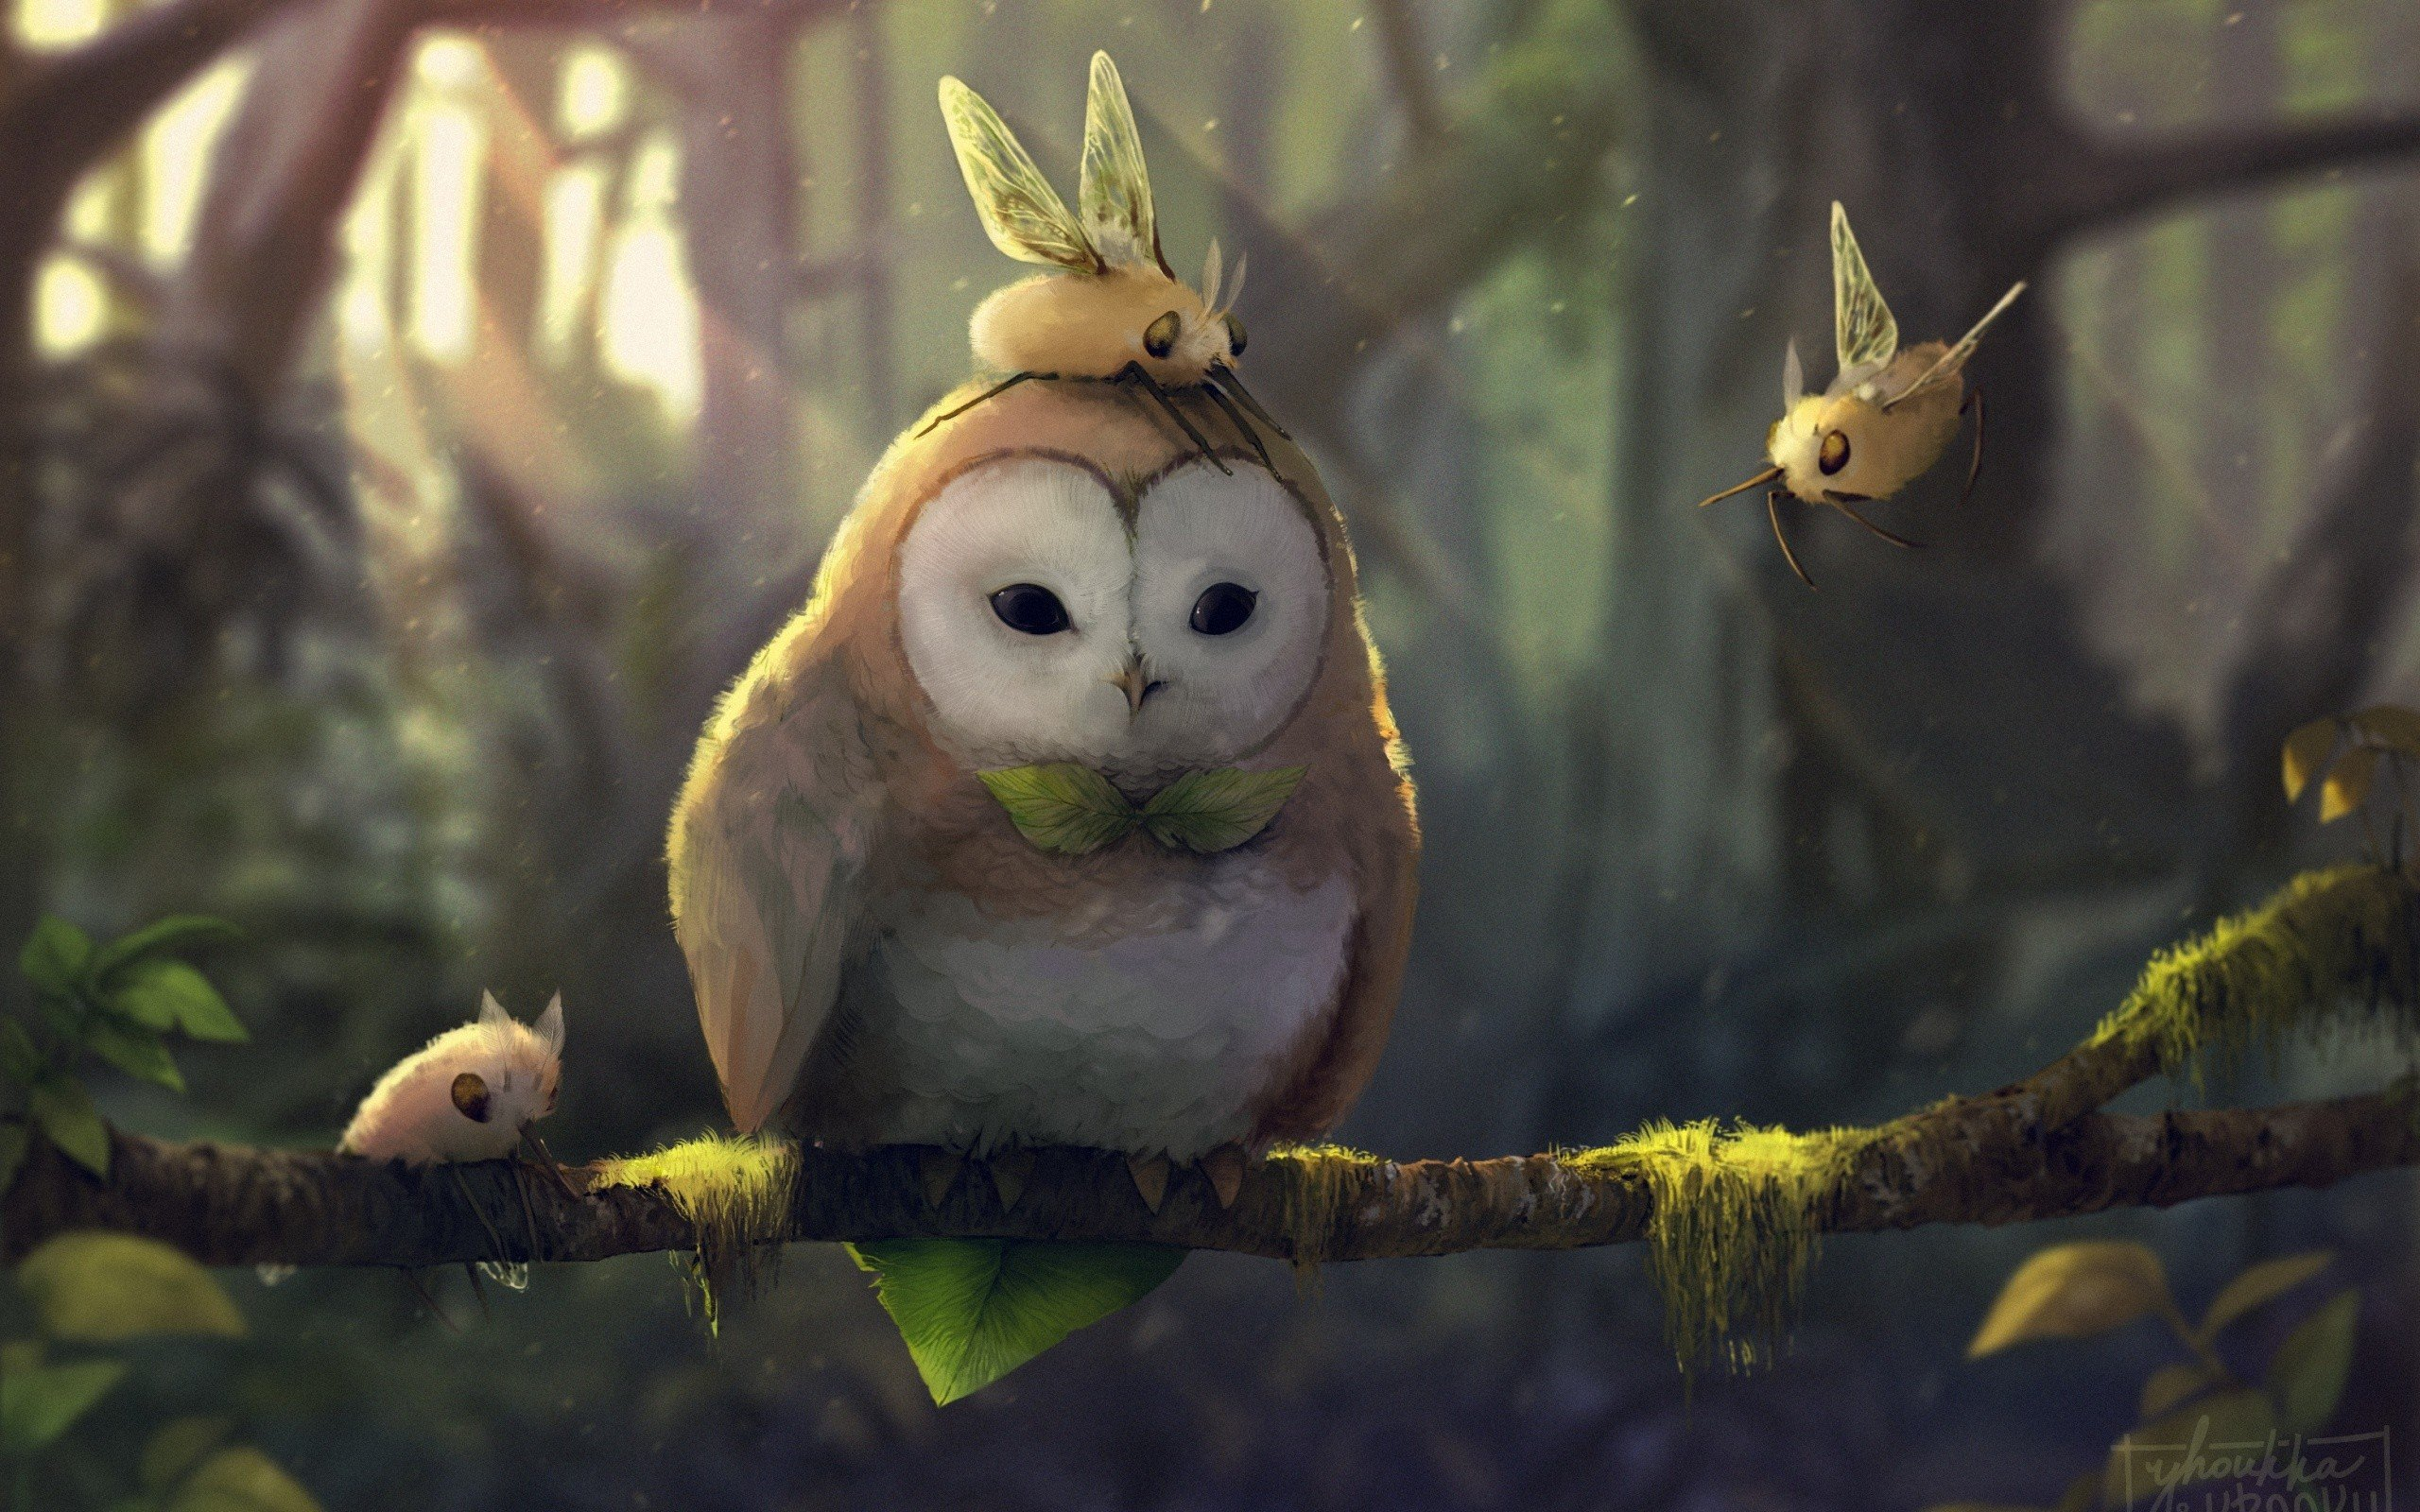 fantasy art, Artwork, Pokémon, Rowlet (Pokémon), Cutiefly (pokemon) Wallpaper